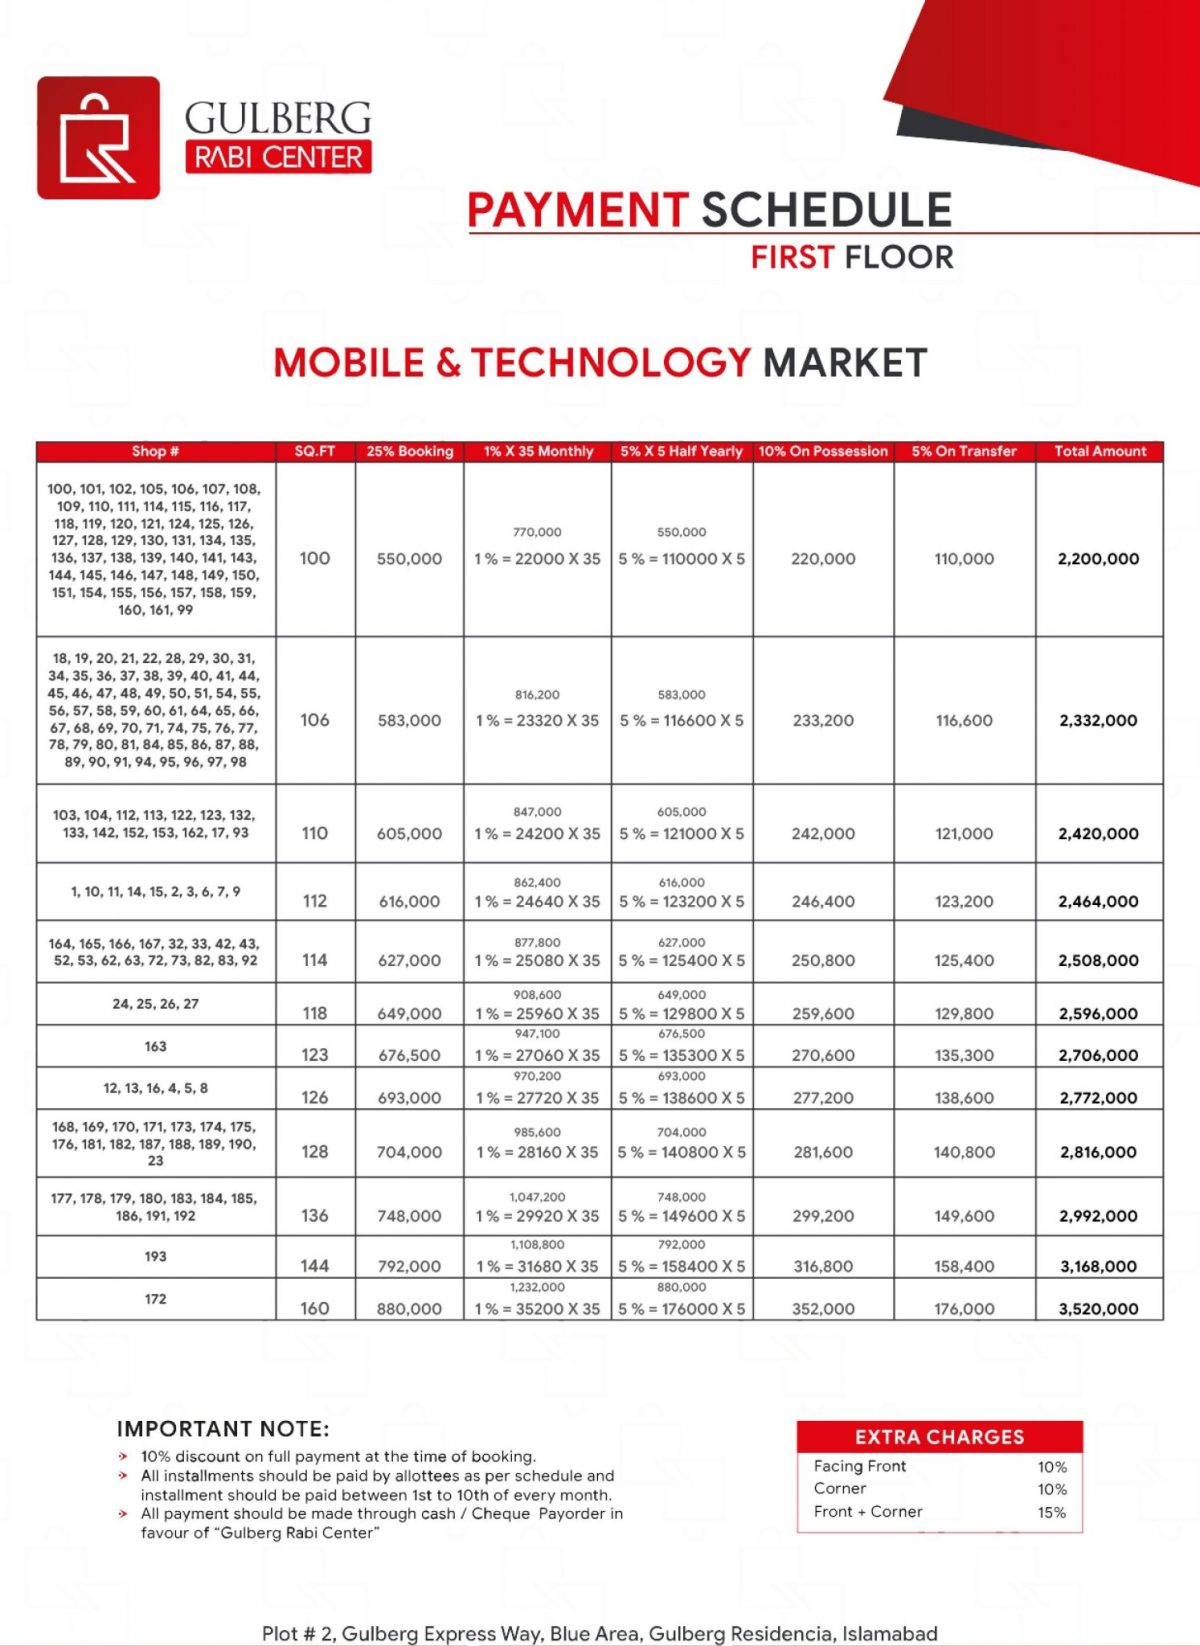 Payment Schedule First Floor - Mobile & Technology Market